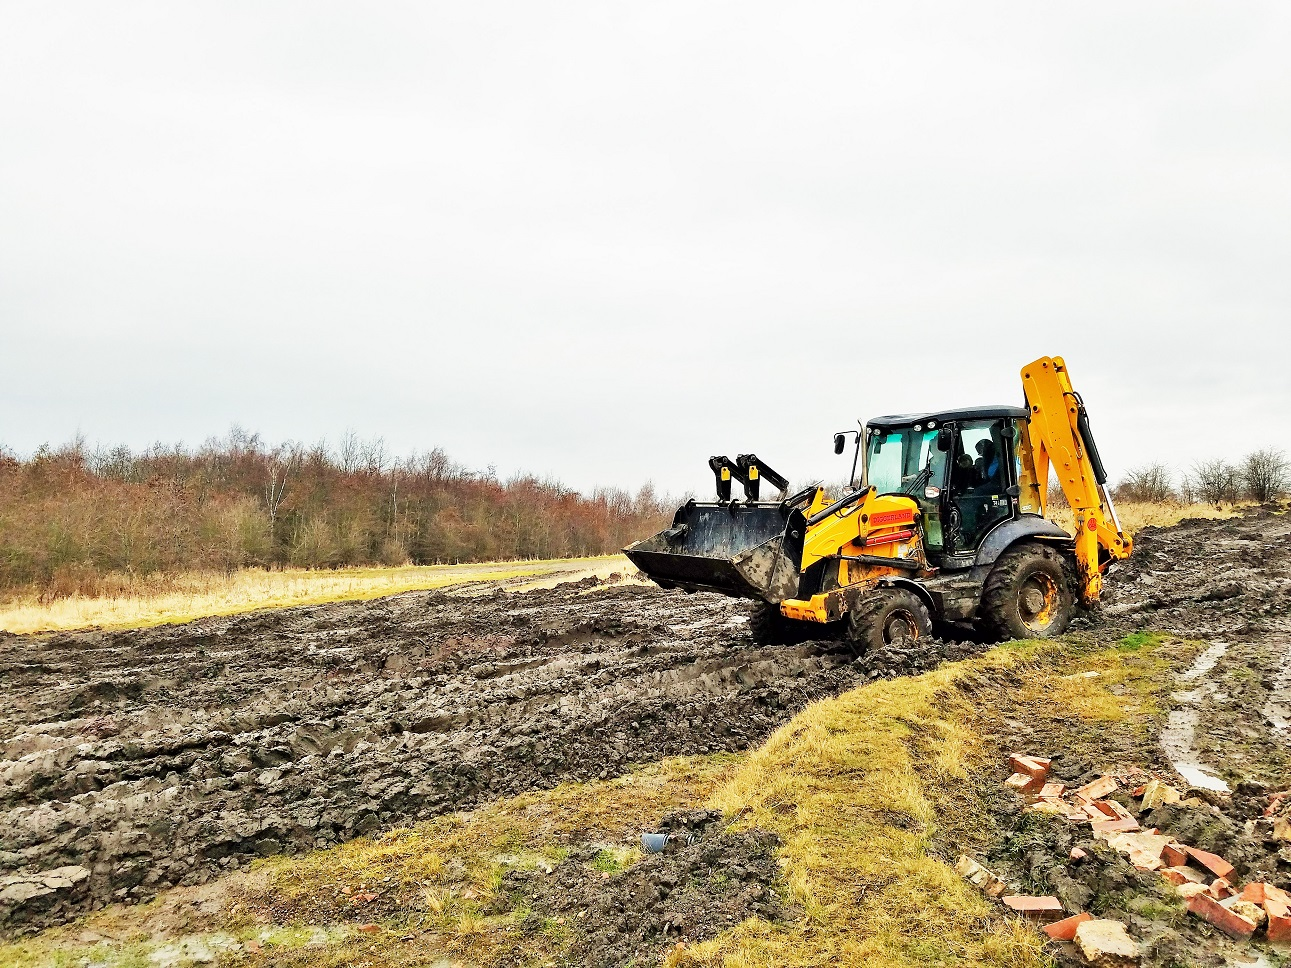 Diggerland in the rain - large tractor driving through mud